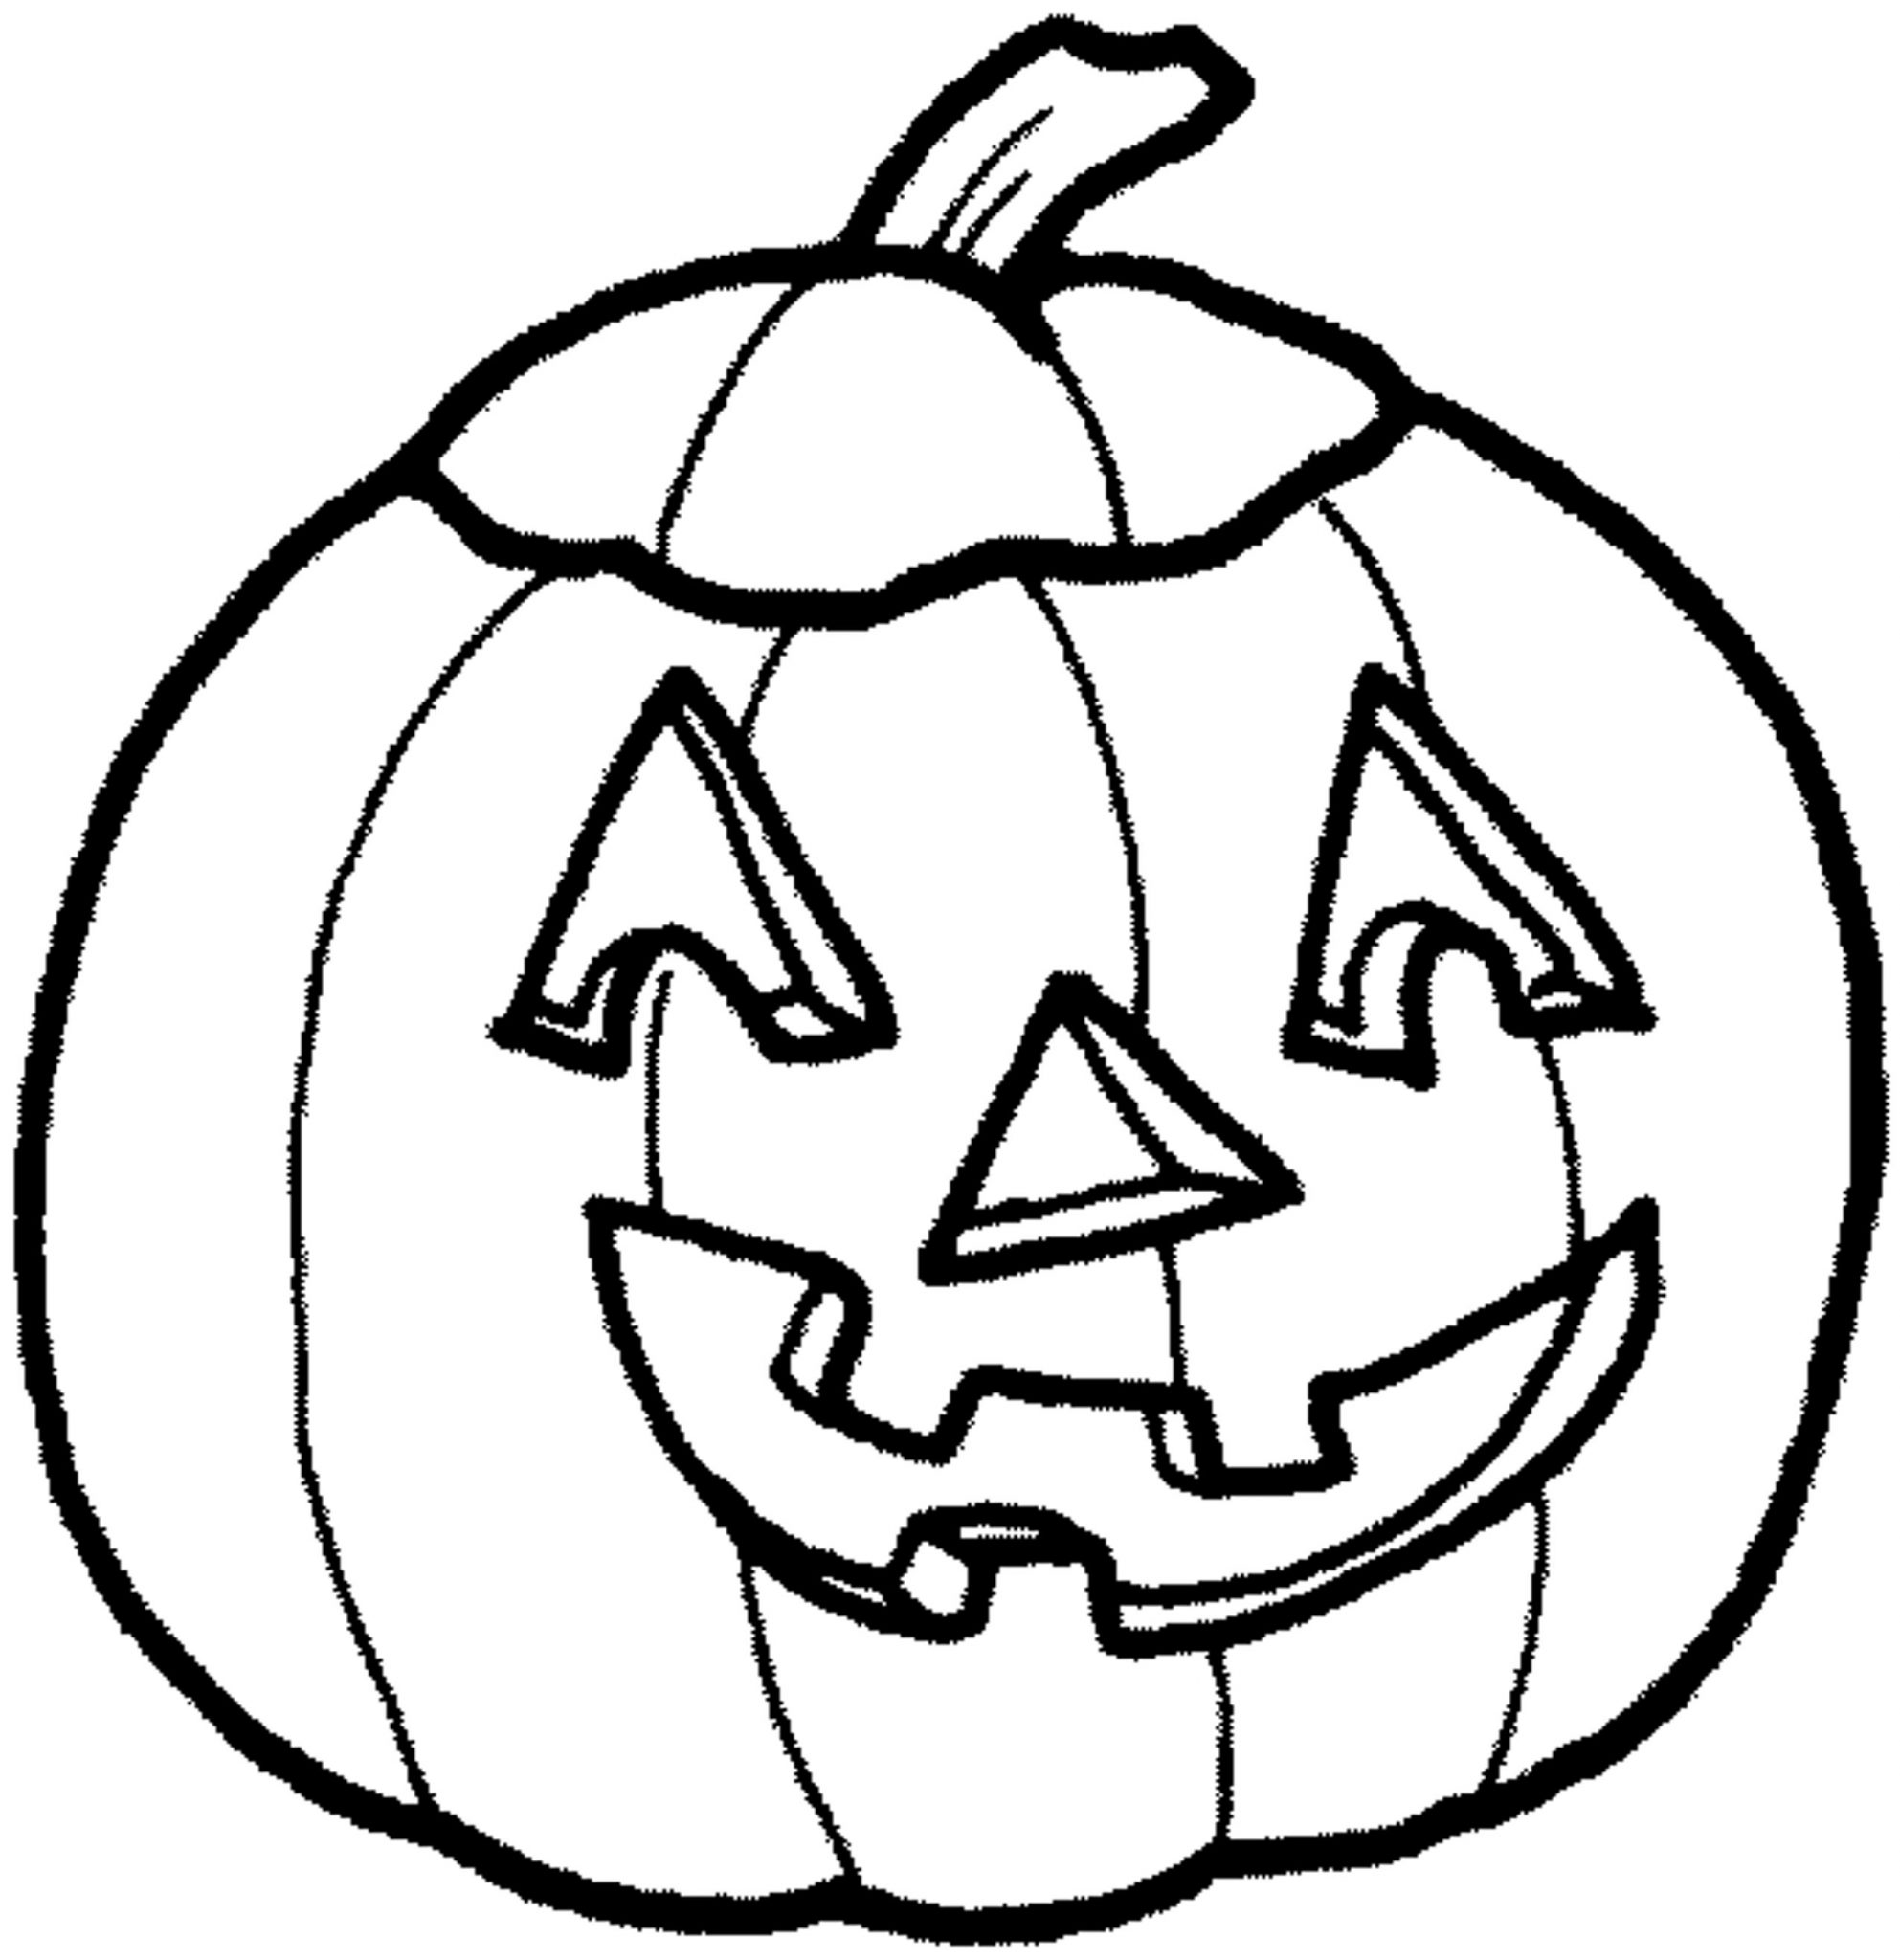 coloring pages of a pumpkin free printable pumpkin coloring pages for kids pages of coloring pumpkin a